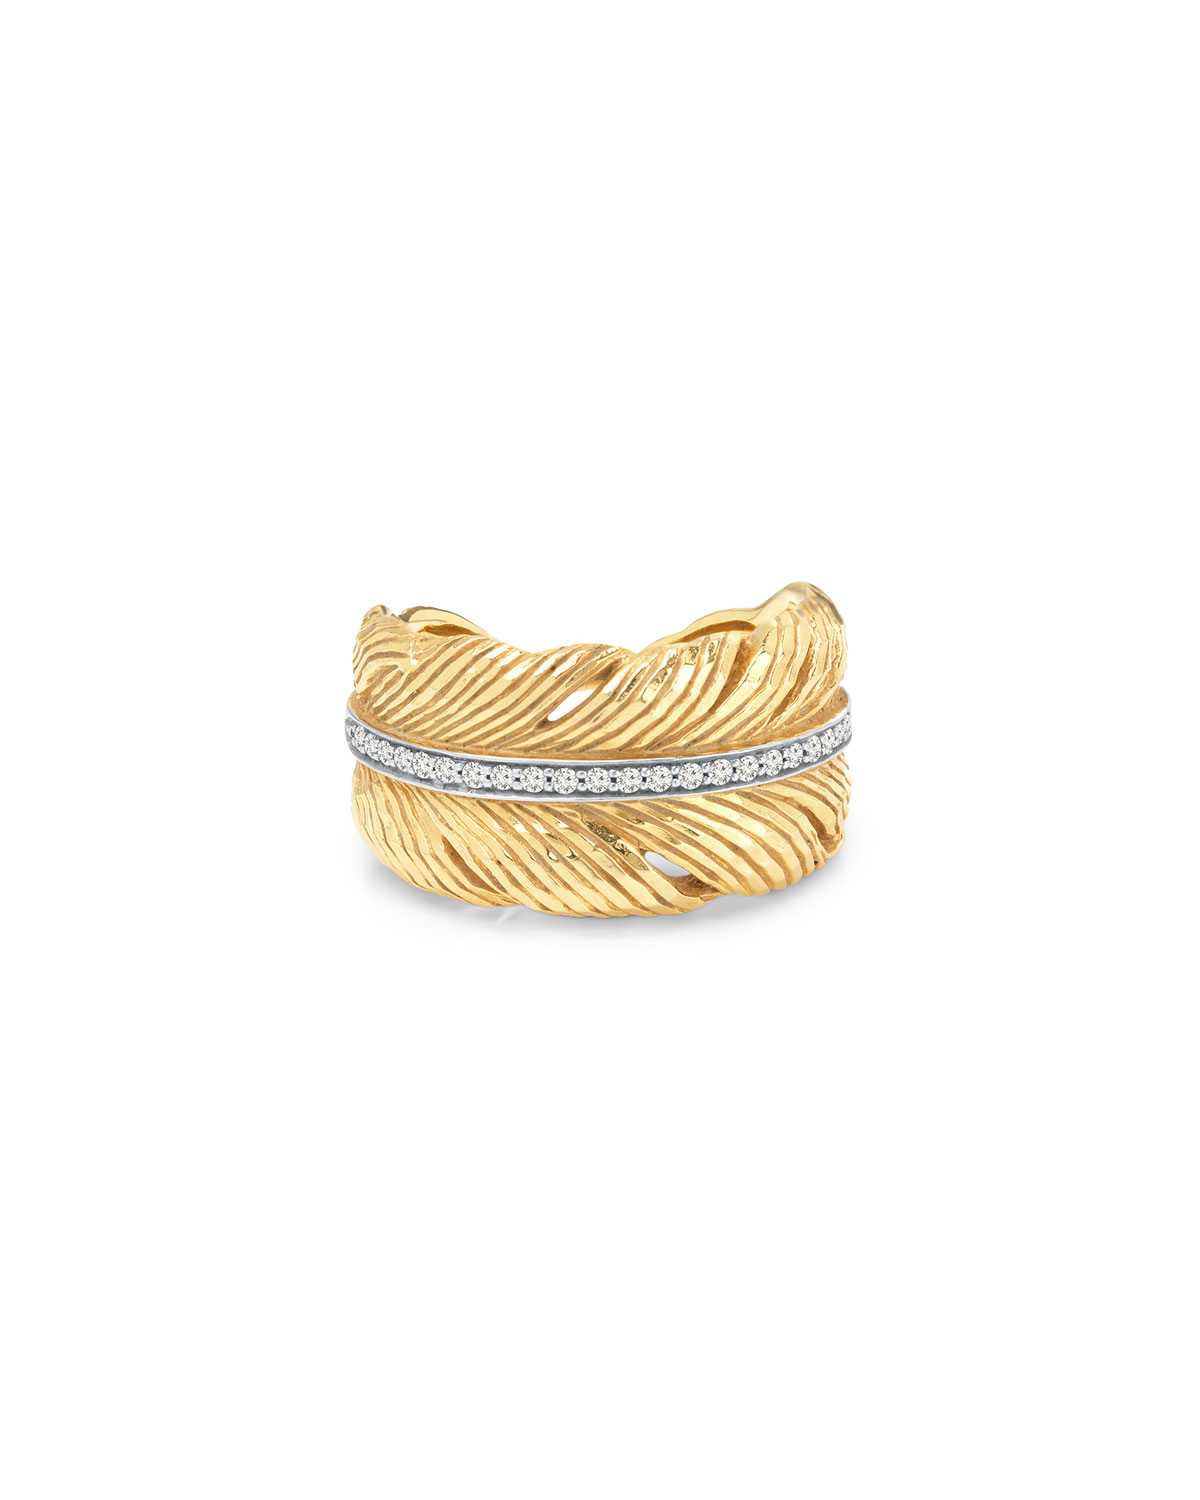 18K Yellow Gold Feather Ring with Diamonds